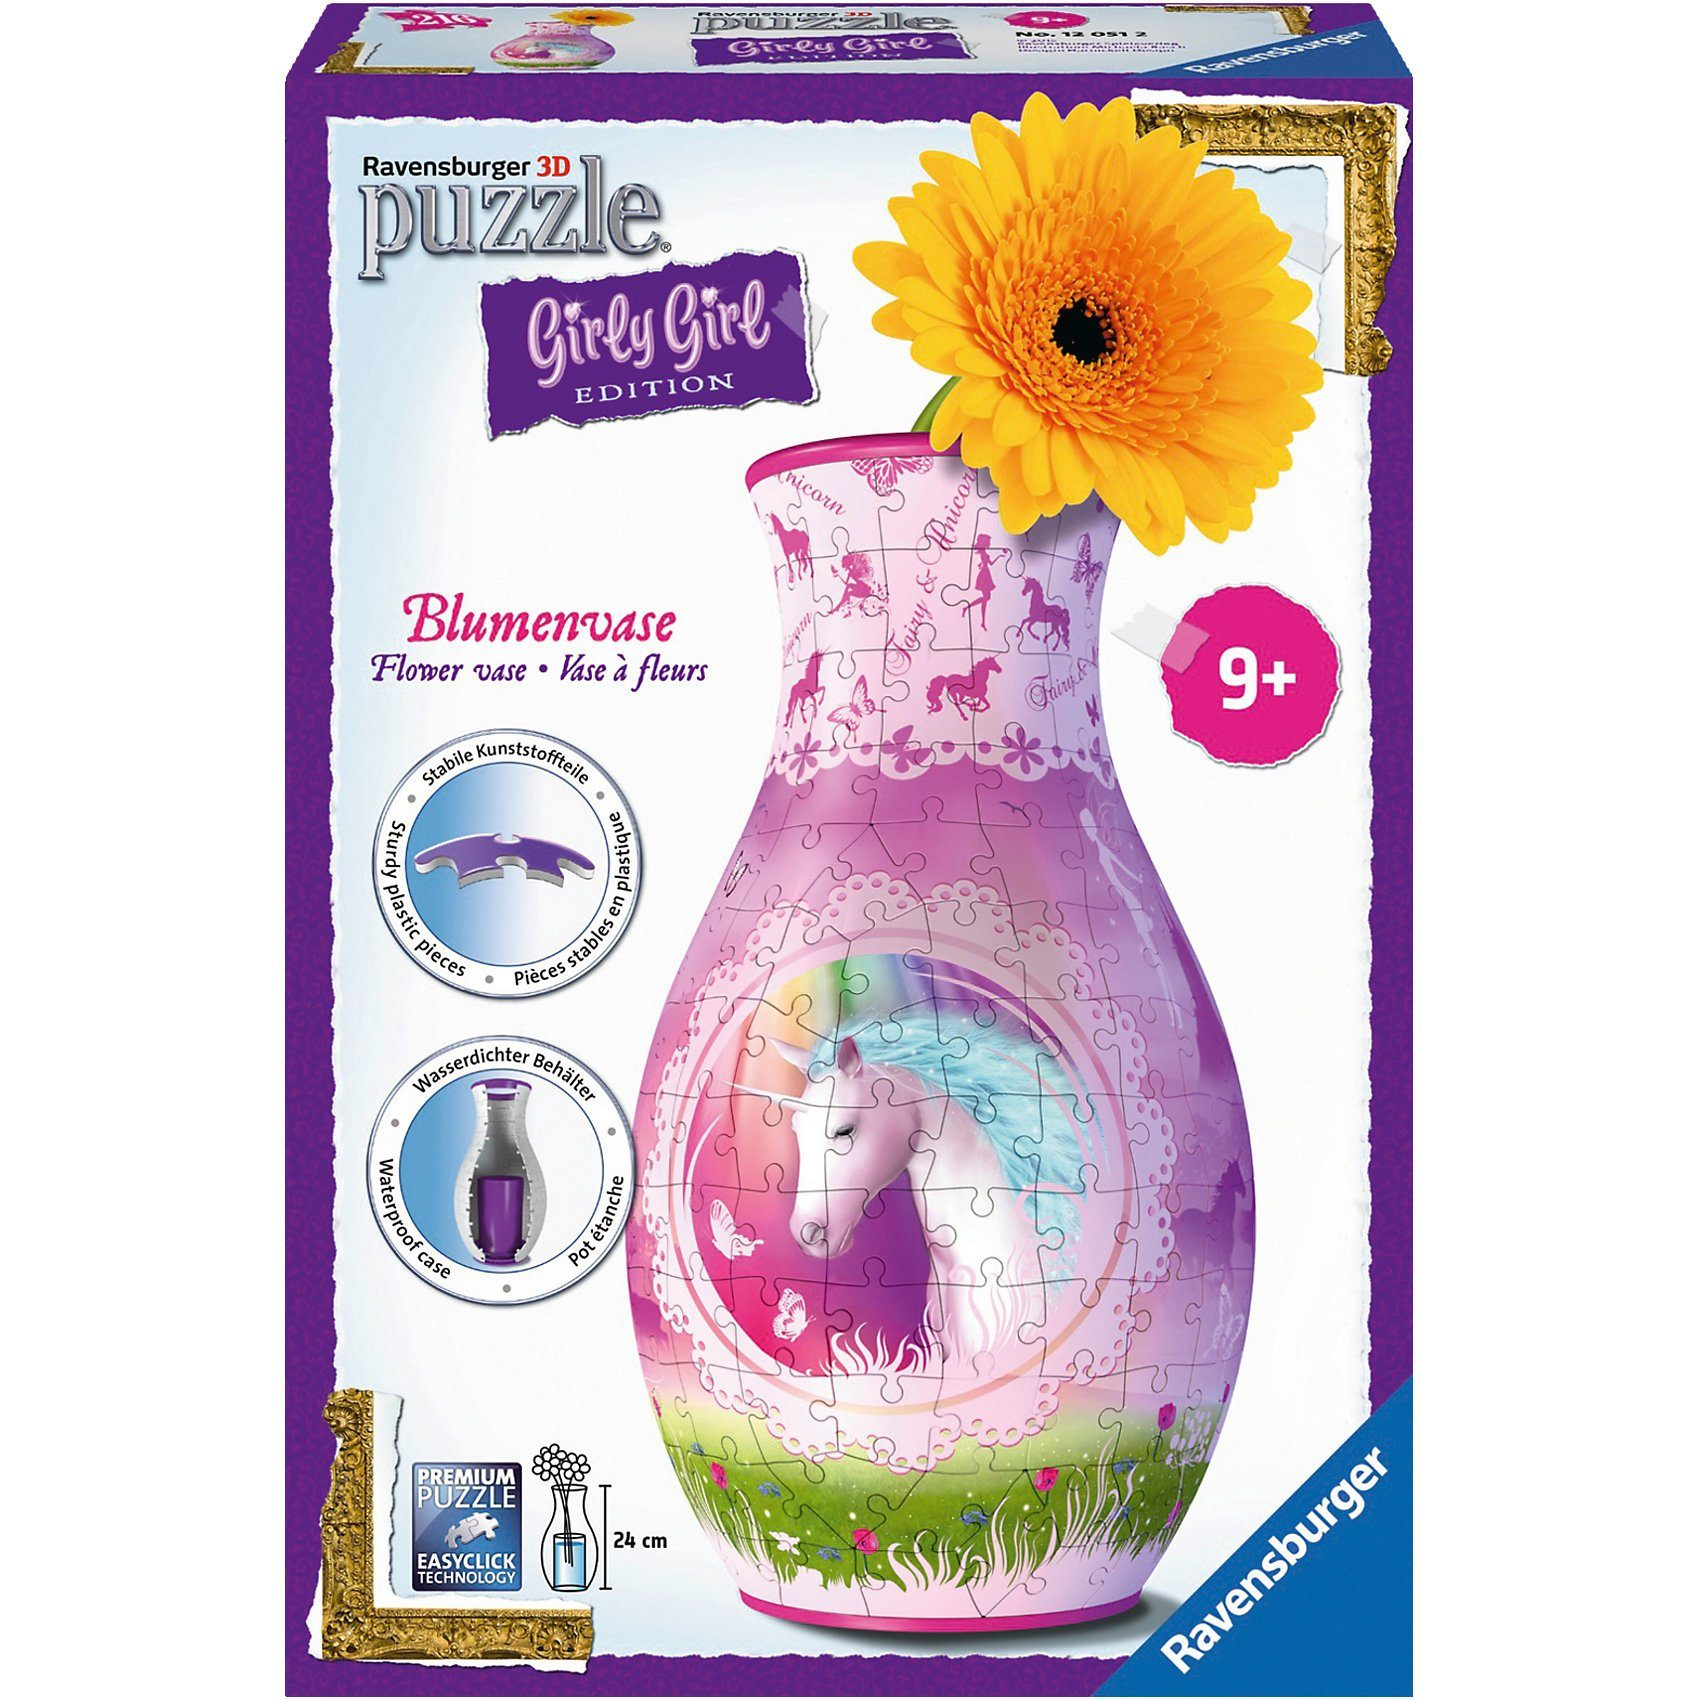 Ravensburger 3-D Puzzle Girly Girl Edition Blumenvase Einhörner